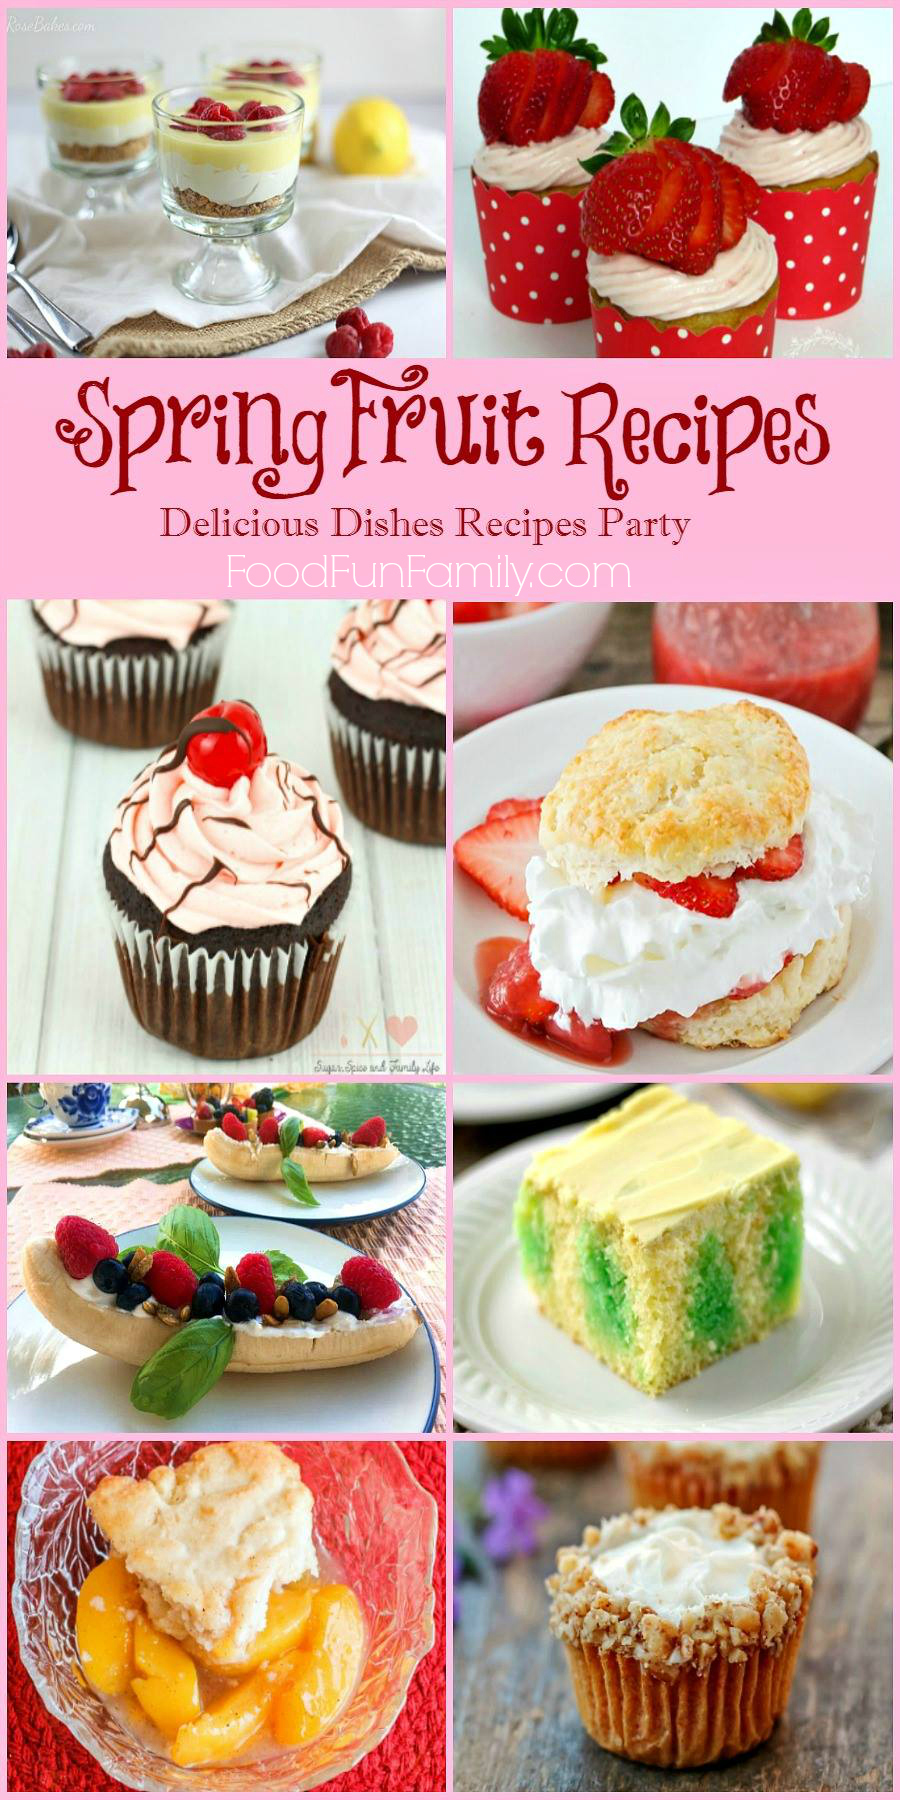 Delicious Spring Fruit Recipes - Dishes Recipe Party at FoodFunFamily.com